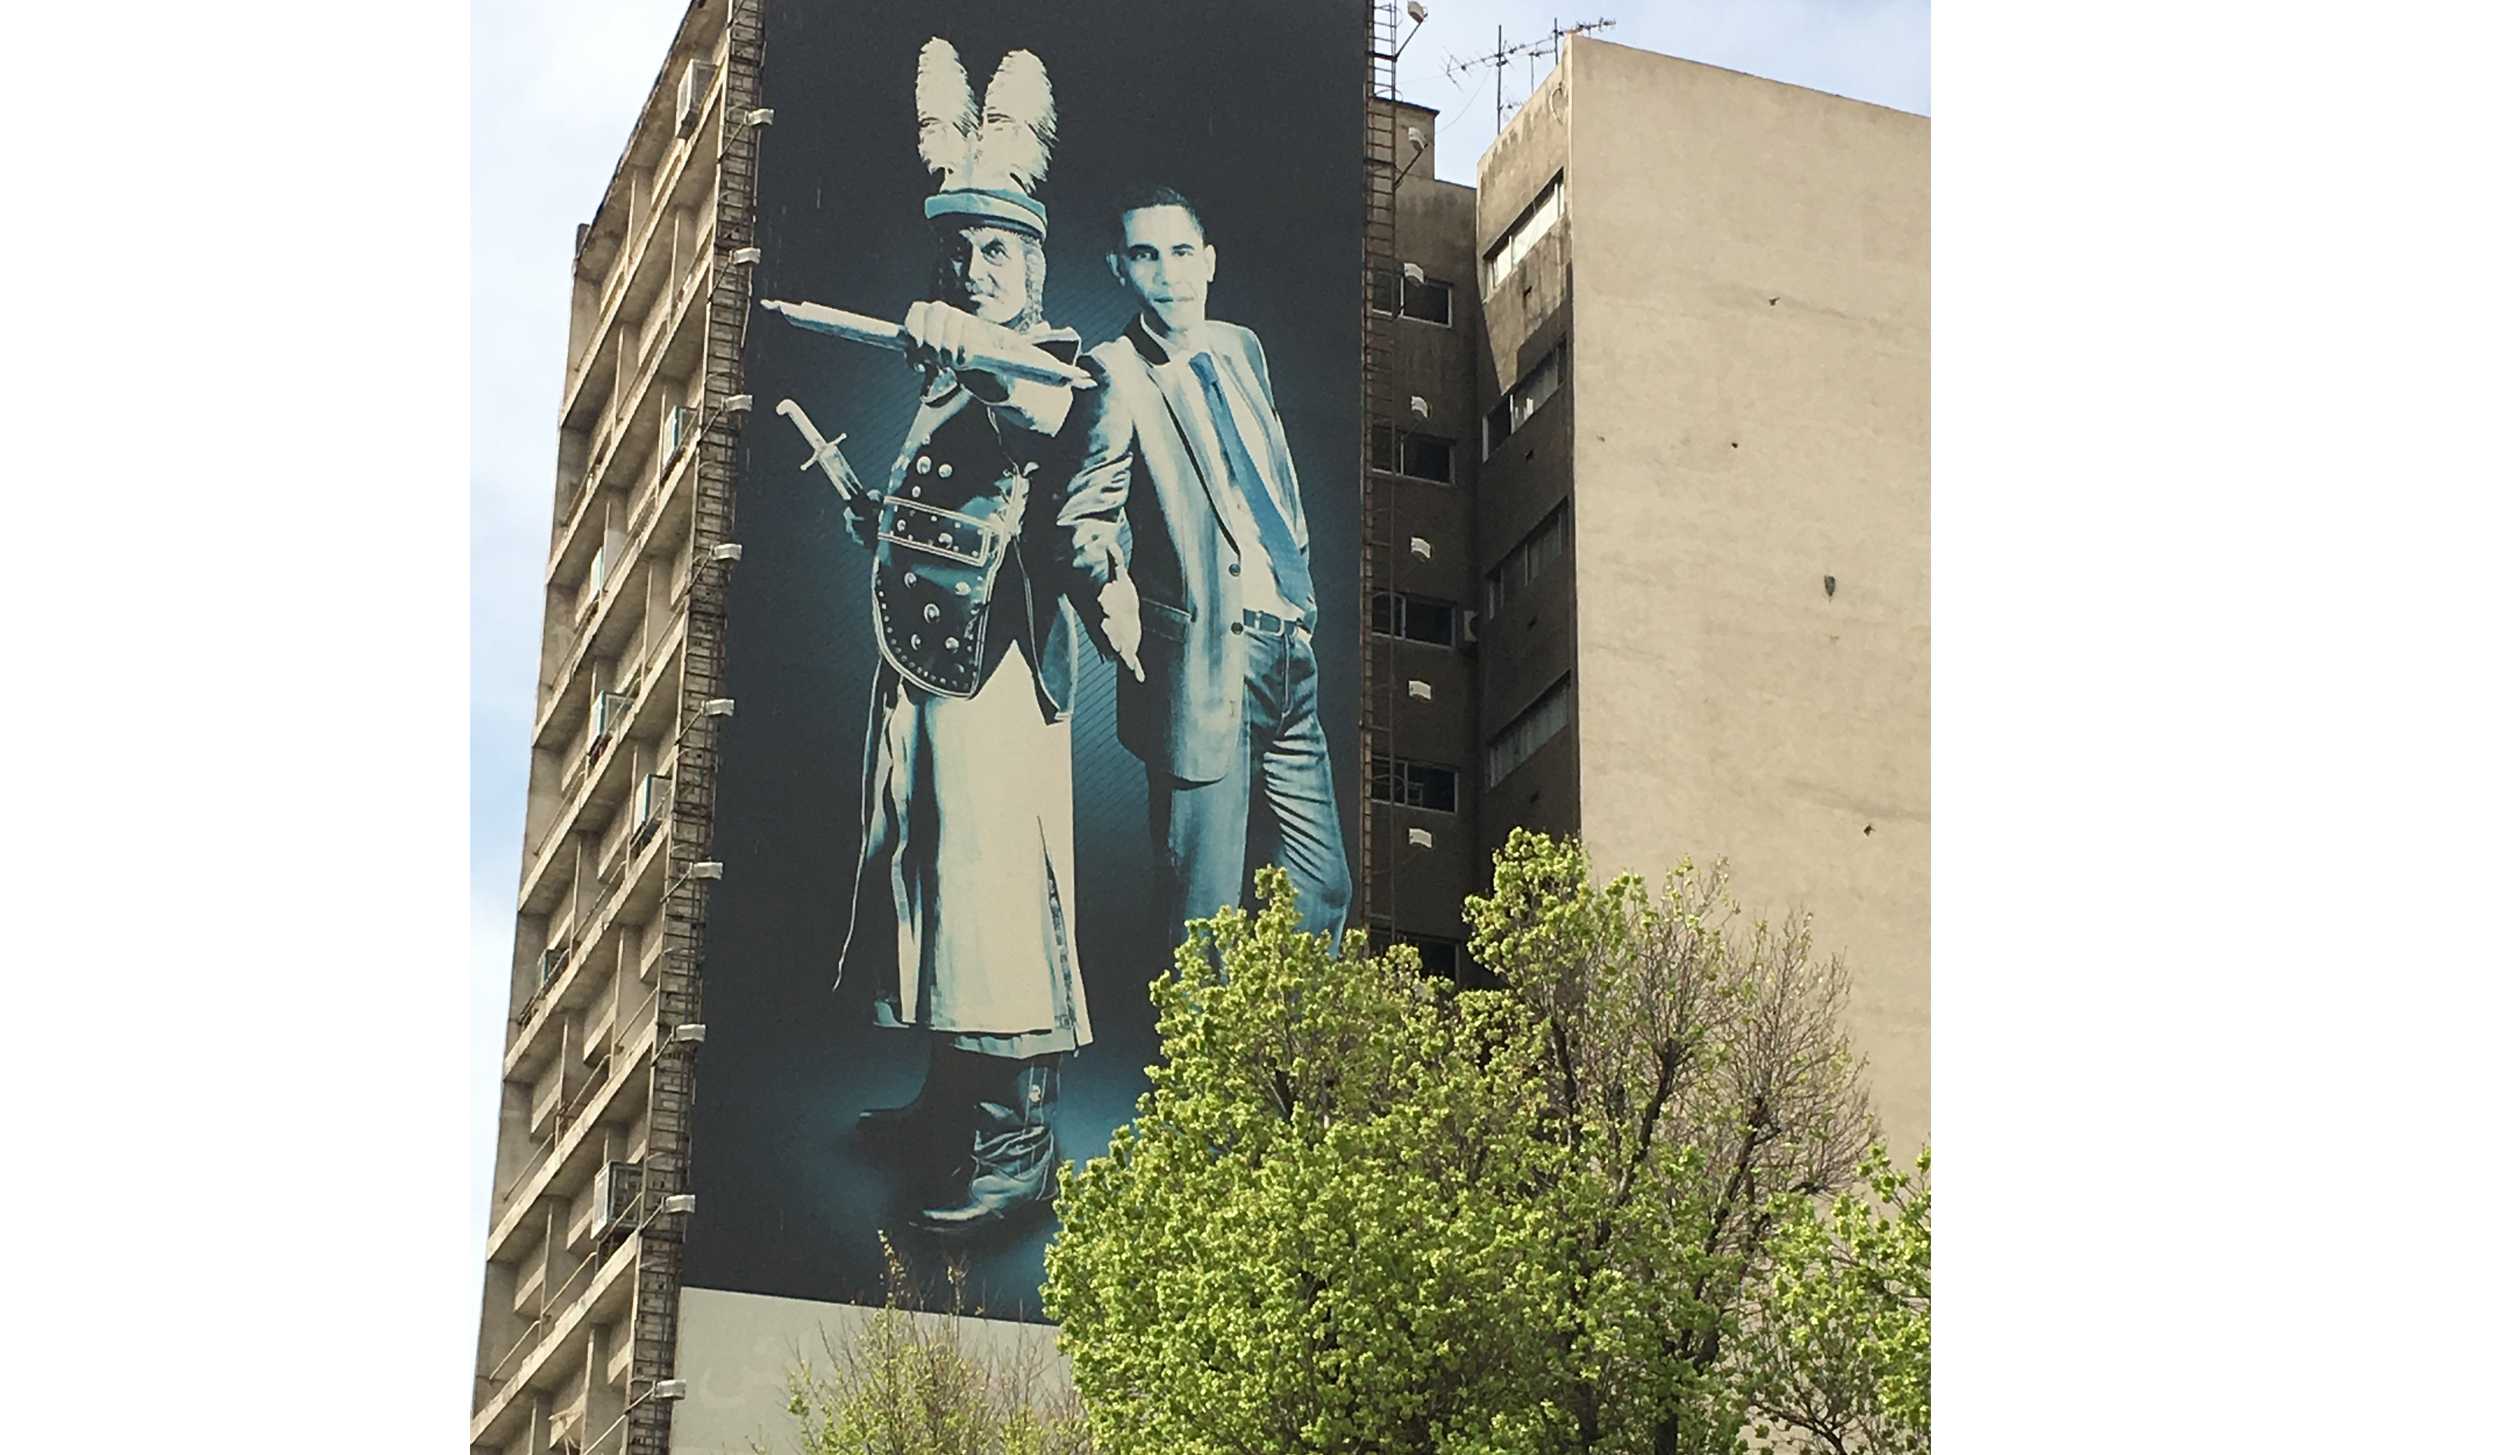 A mural in downtown Tehran shows President Obama with the 7th-century villain Shemr, who killed the Shiite Muslims' leader Hussein. The cryptic artwork suggests Obama cannot be trusted.